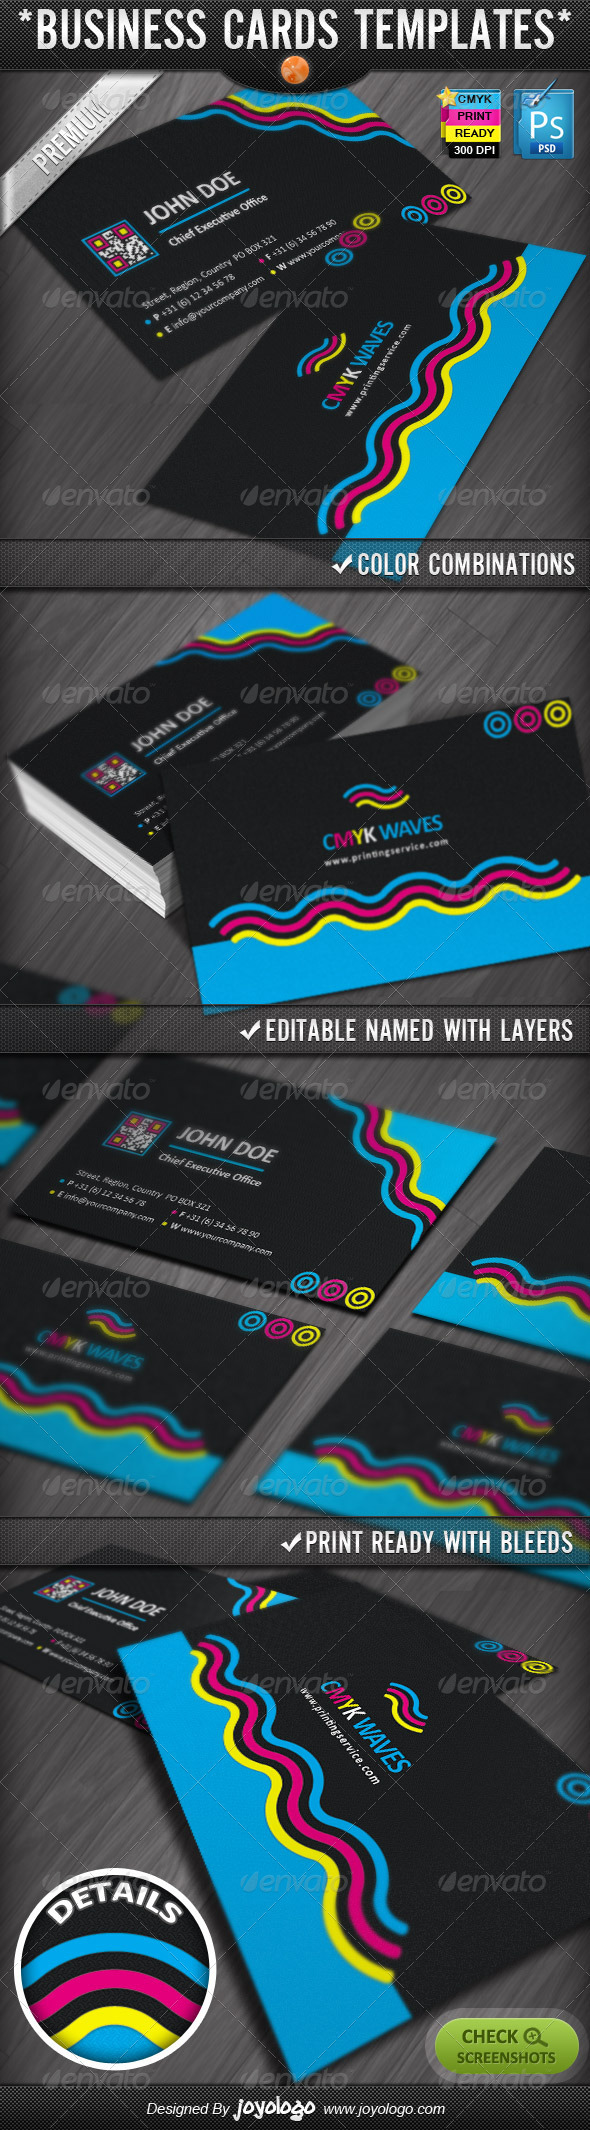 CMYK Colors Print Company Business Cards Design | Printing companies ...